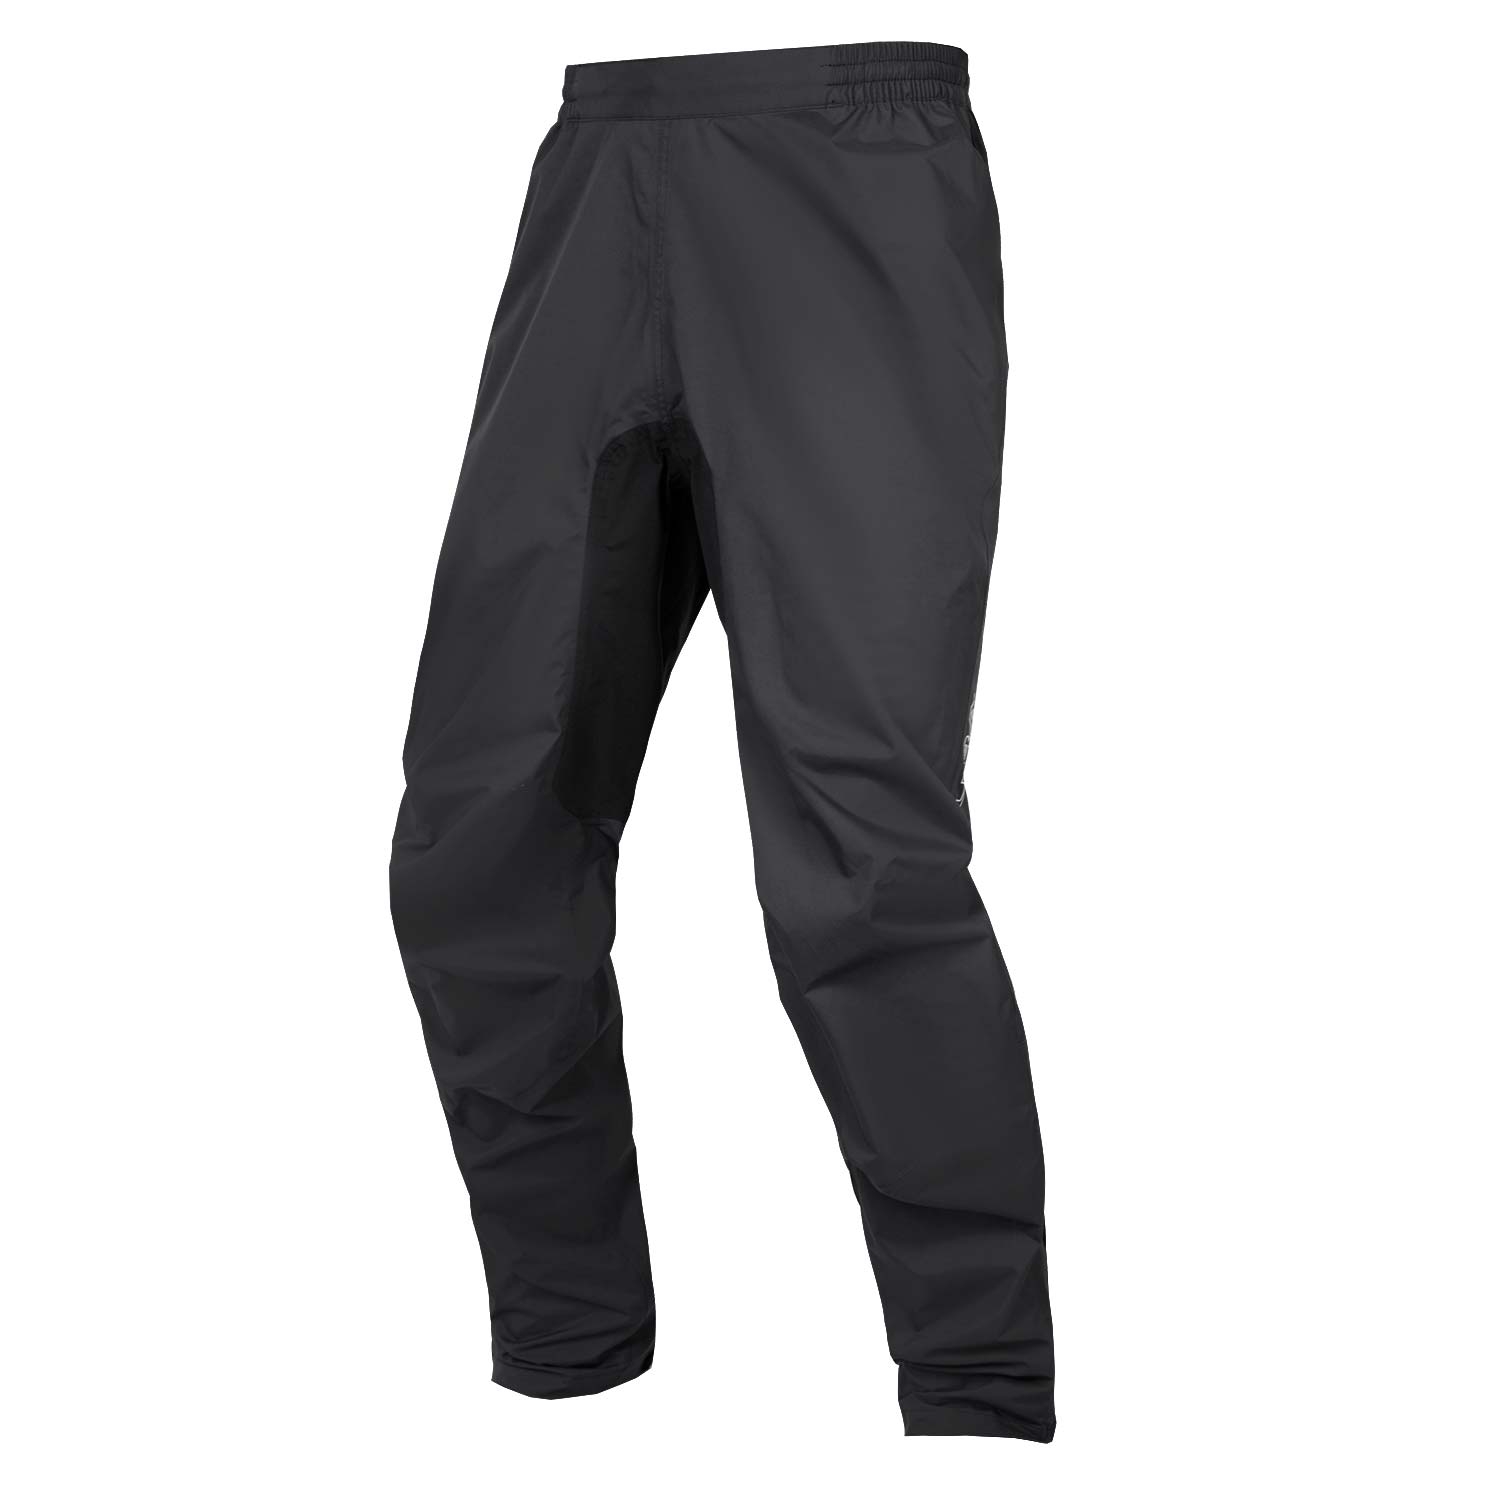 Endura Humvee waterproof trousers